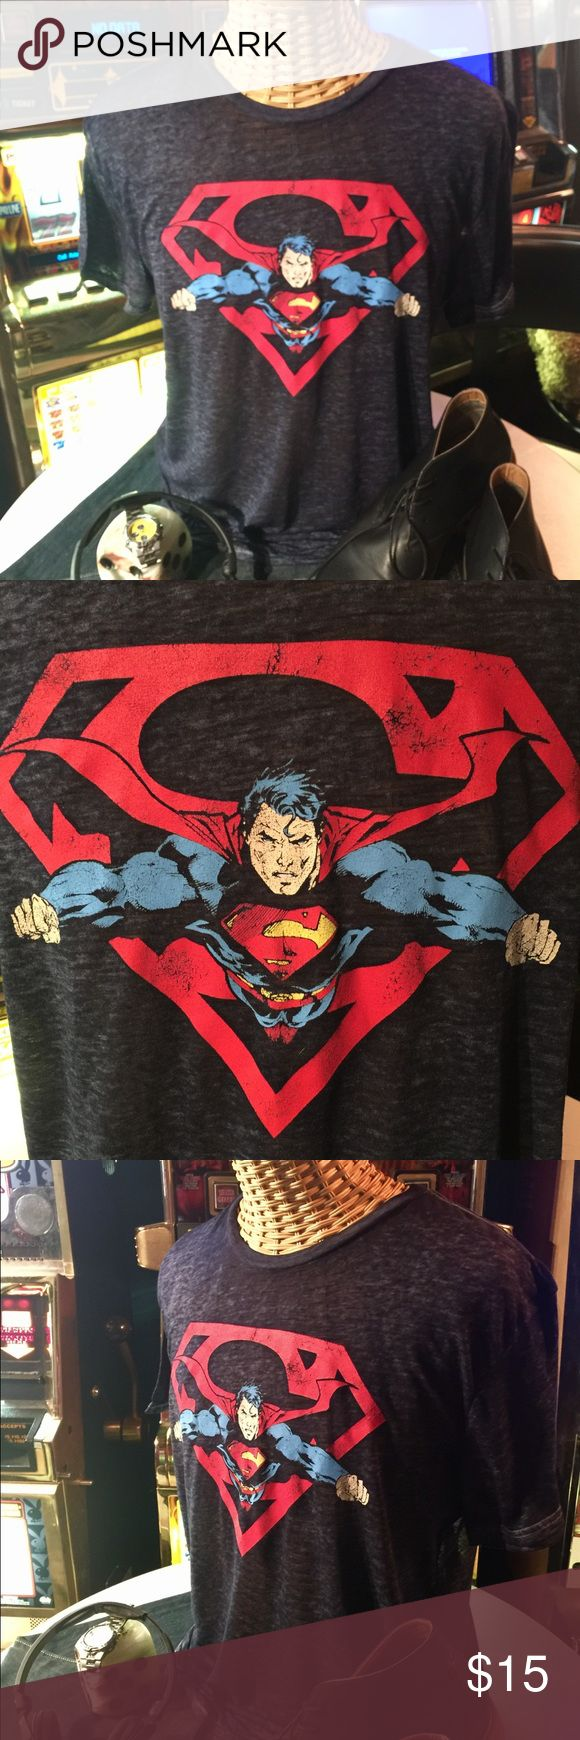 """Short sleeve burnout """"Superman"""" tee blue/black- L Short sleeve burnout tee with """"Superman"""" graphic. Note: I was unable to capture the true color of the tee which is a dark """"blue"""" black, not black as shown in the pictures. Width across the chest- 21"""". Gently pre-owned. Superman Shirts Tees - Short Sleeve"""